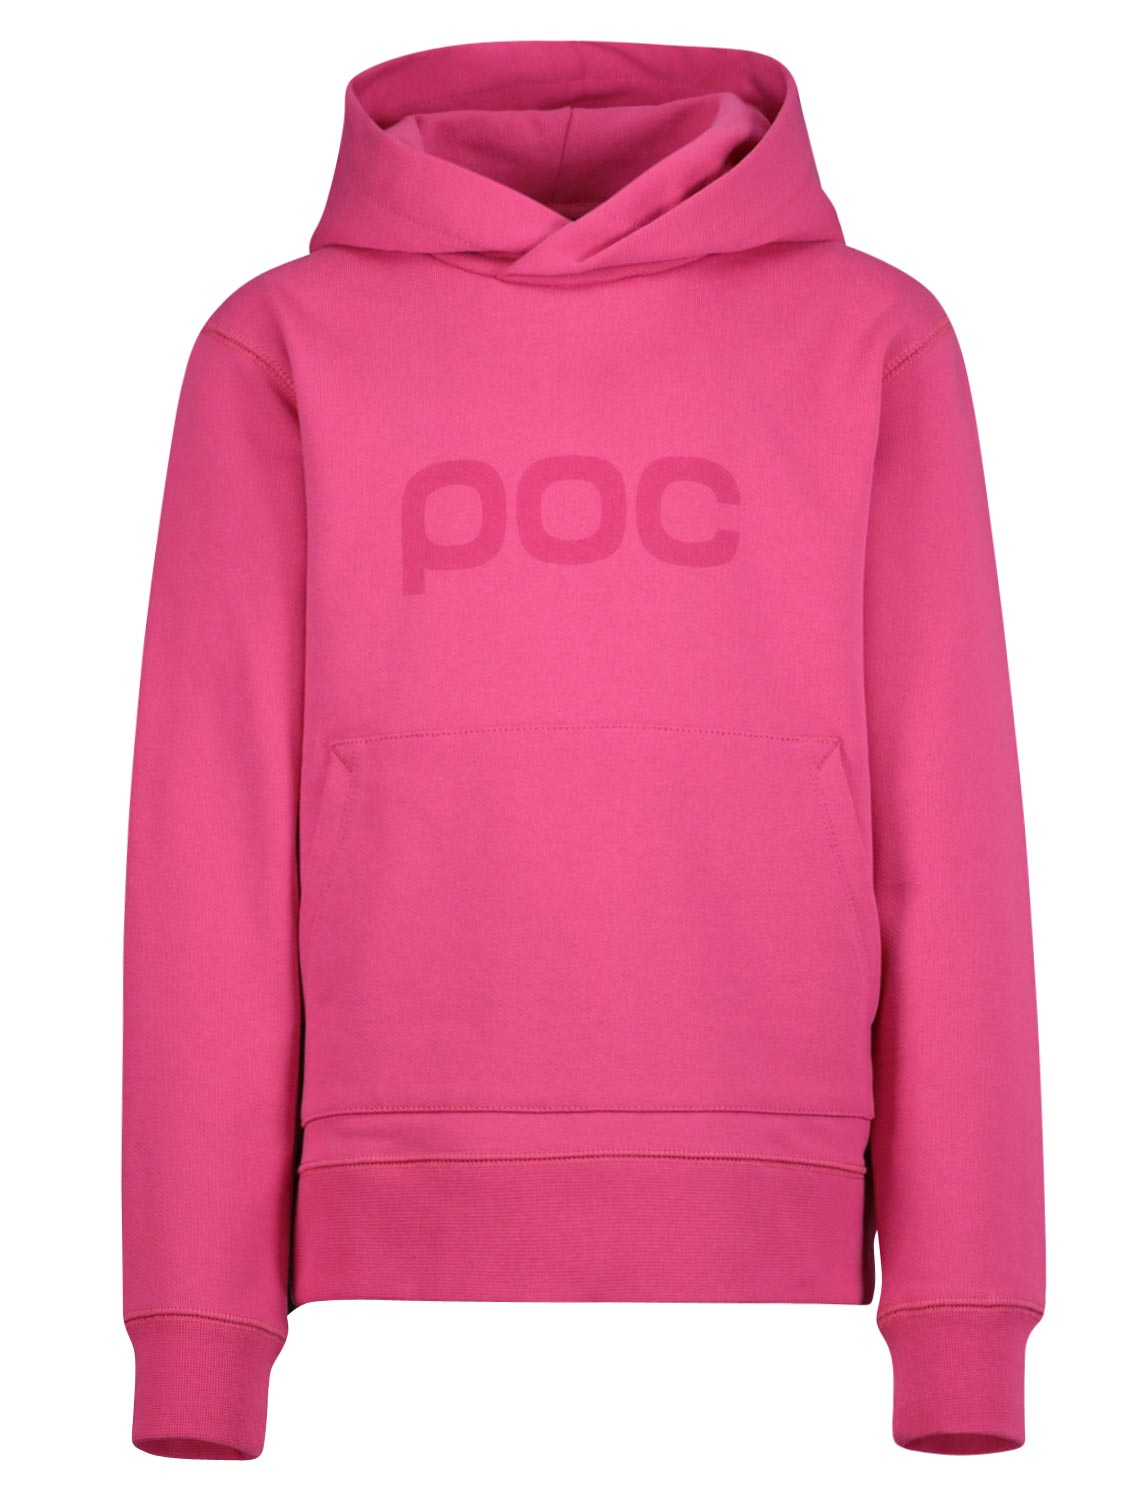 Poc Kids Hoodie For Girls In Pink